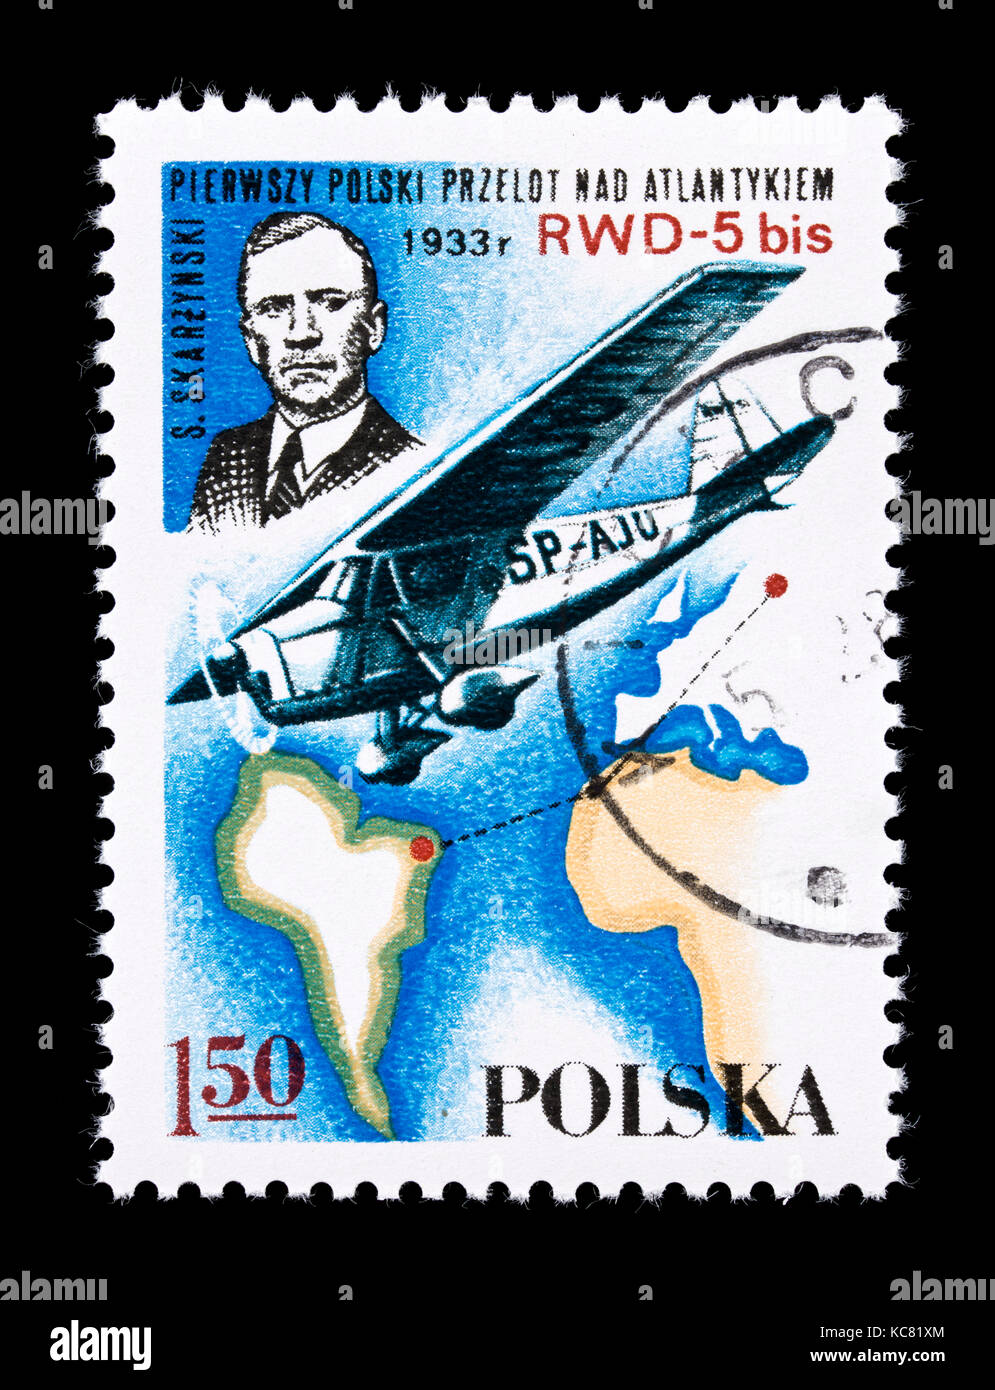 Postage stamp from Poland depicting RWD-5 bis airplane over the south Atlantic and S. Skarzynski - Stock Image